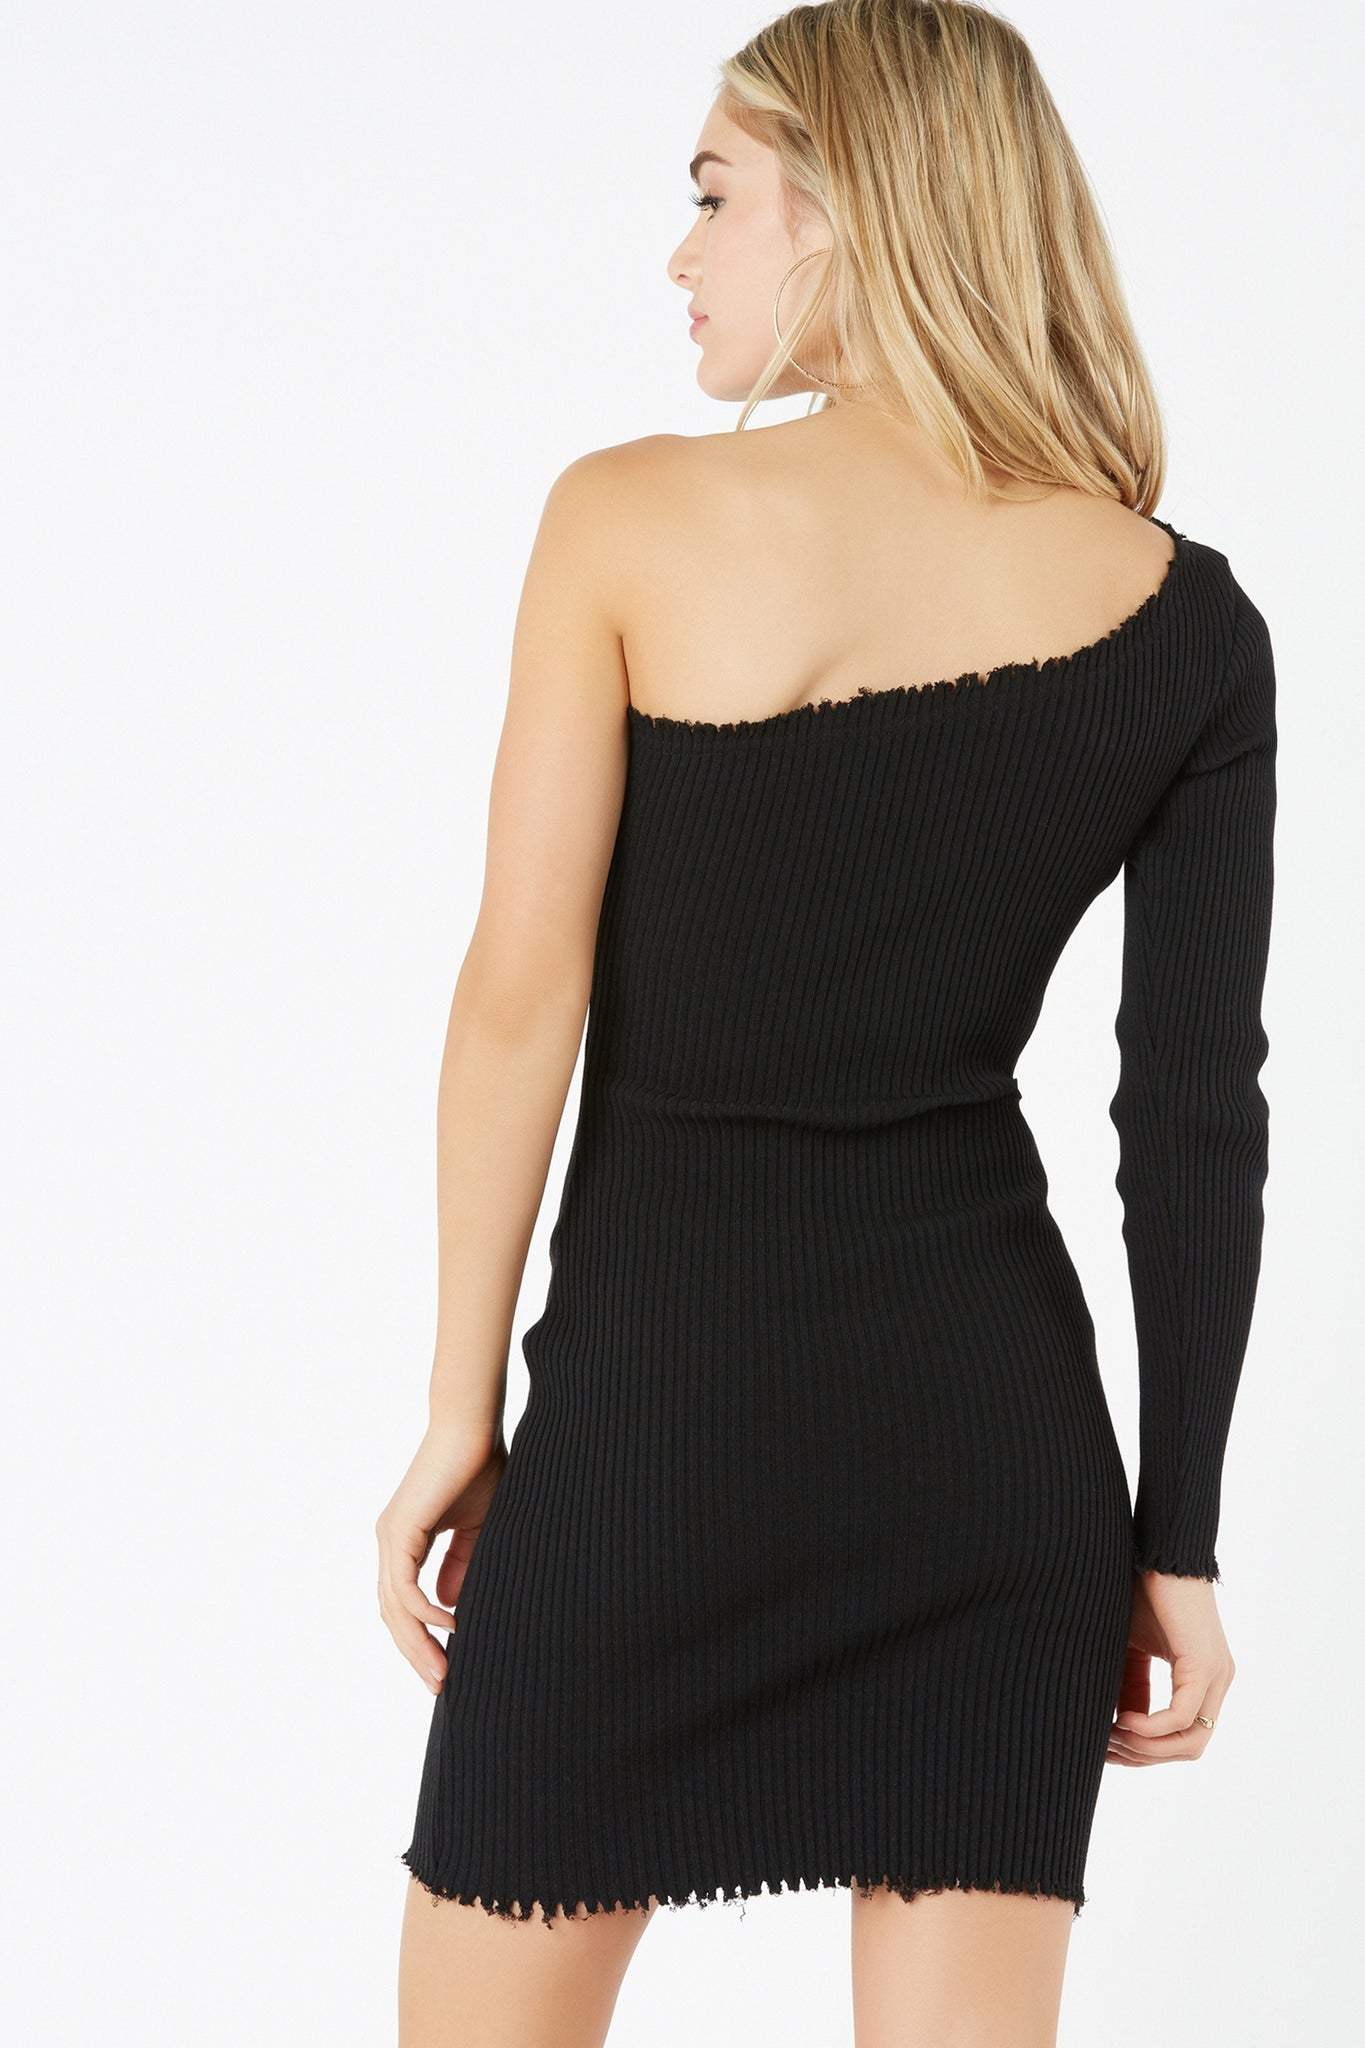 Sexy one shoulder bodycon dress with trendy raw hem detailing all around. Thick ribbed material for comfortable stretch and flattering fit.